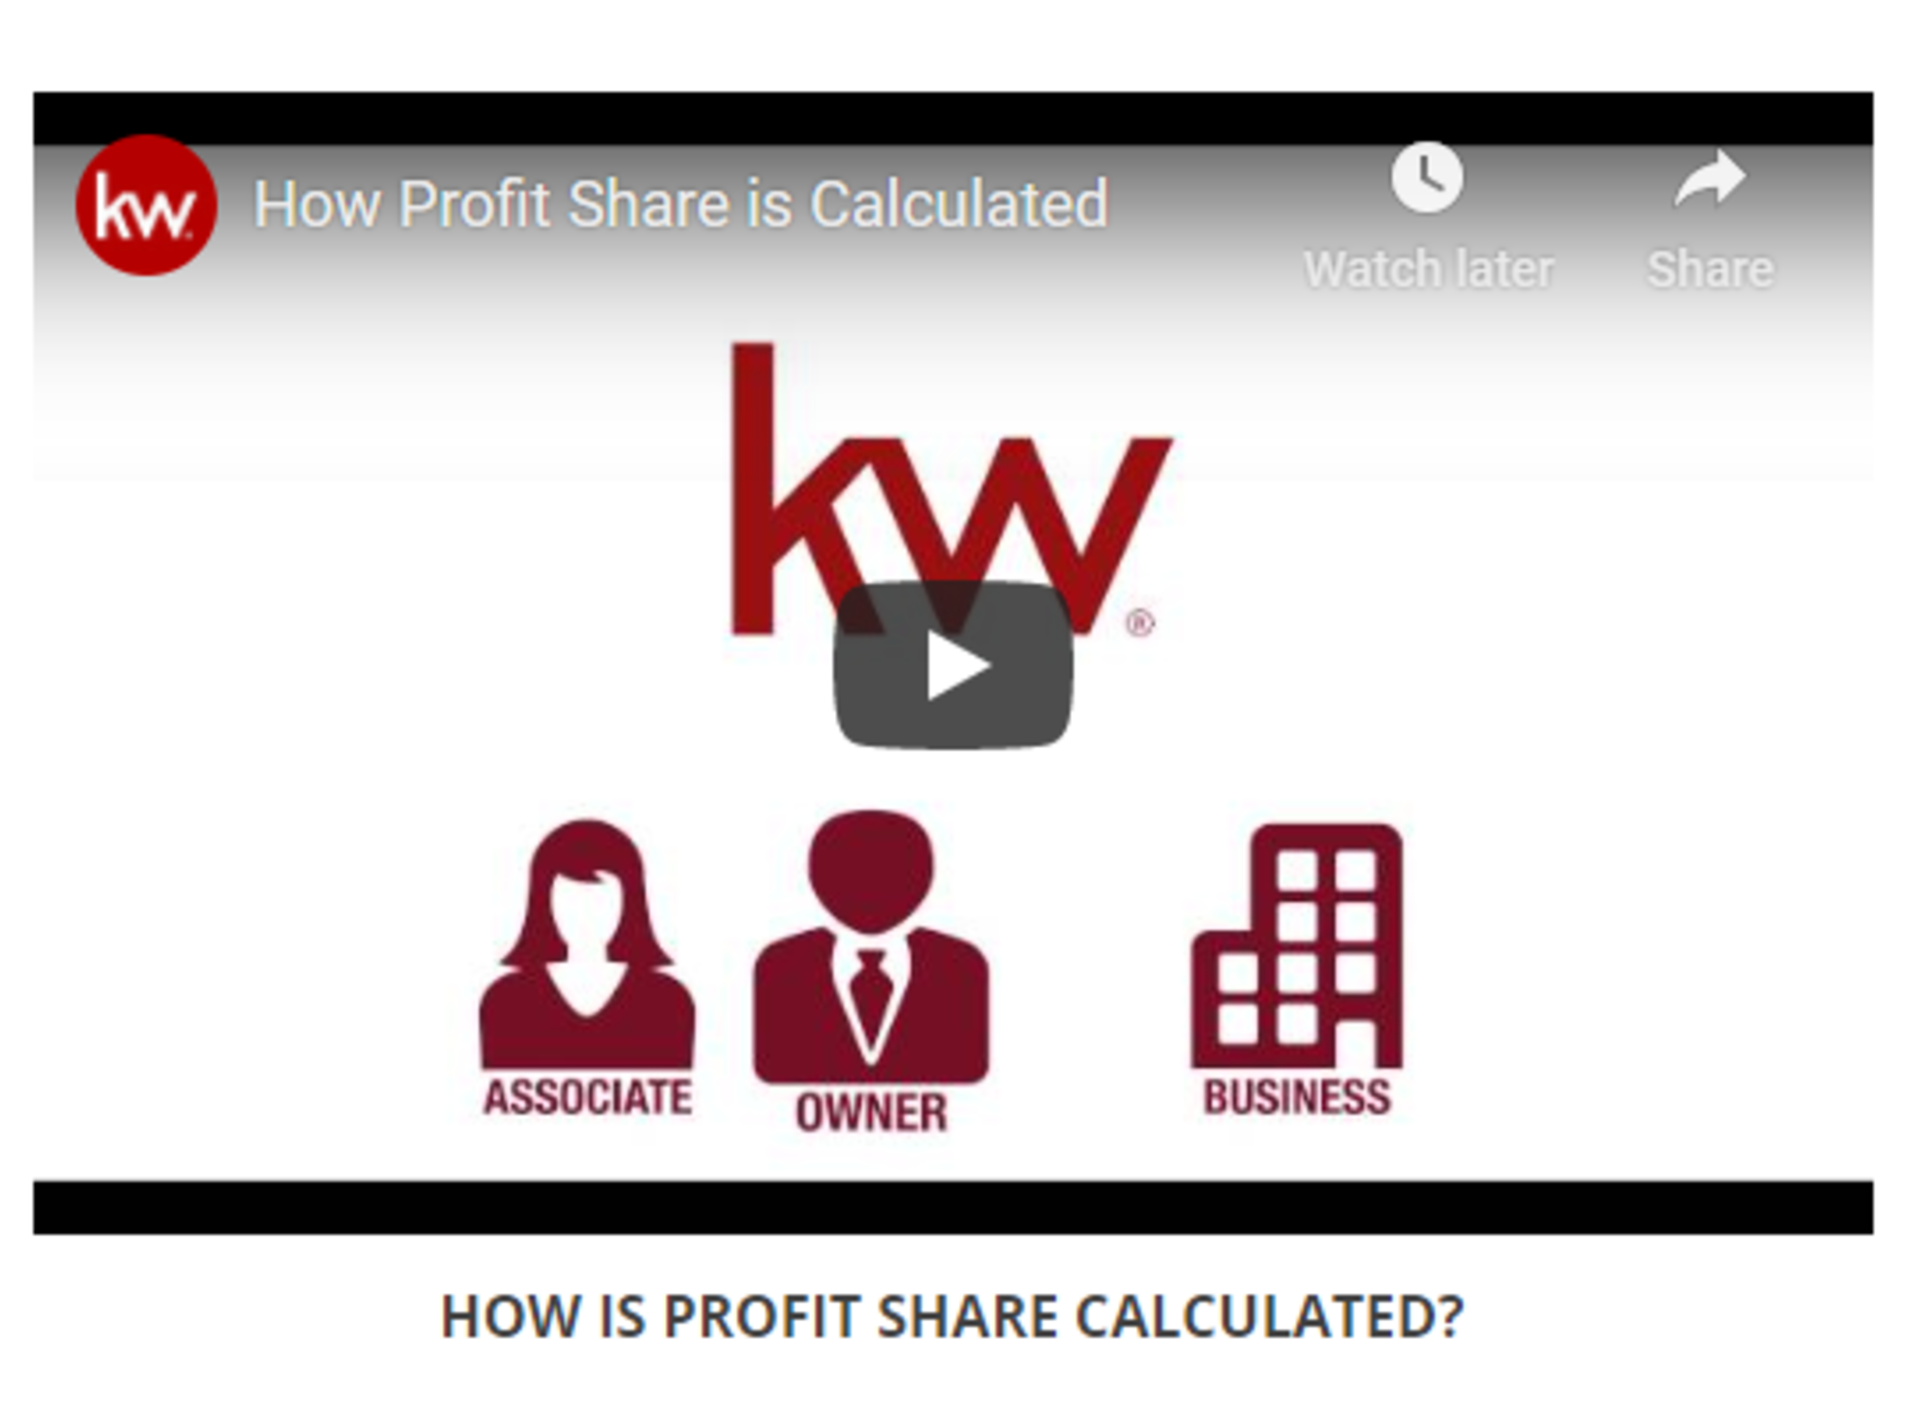 Profit Share at KW